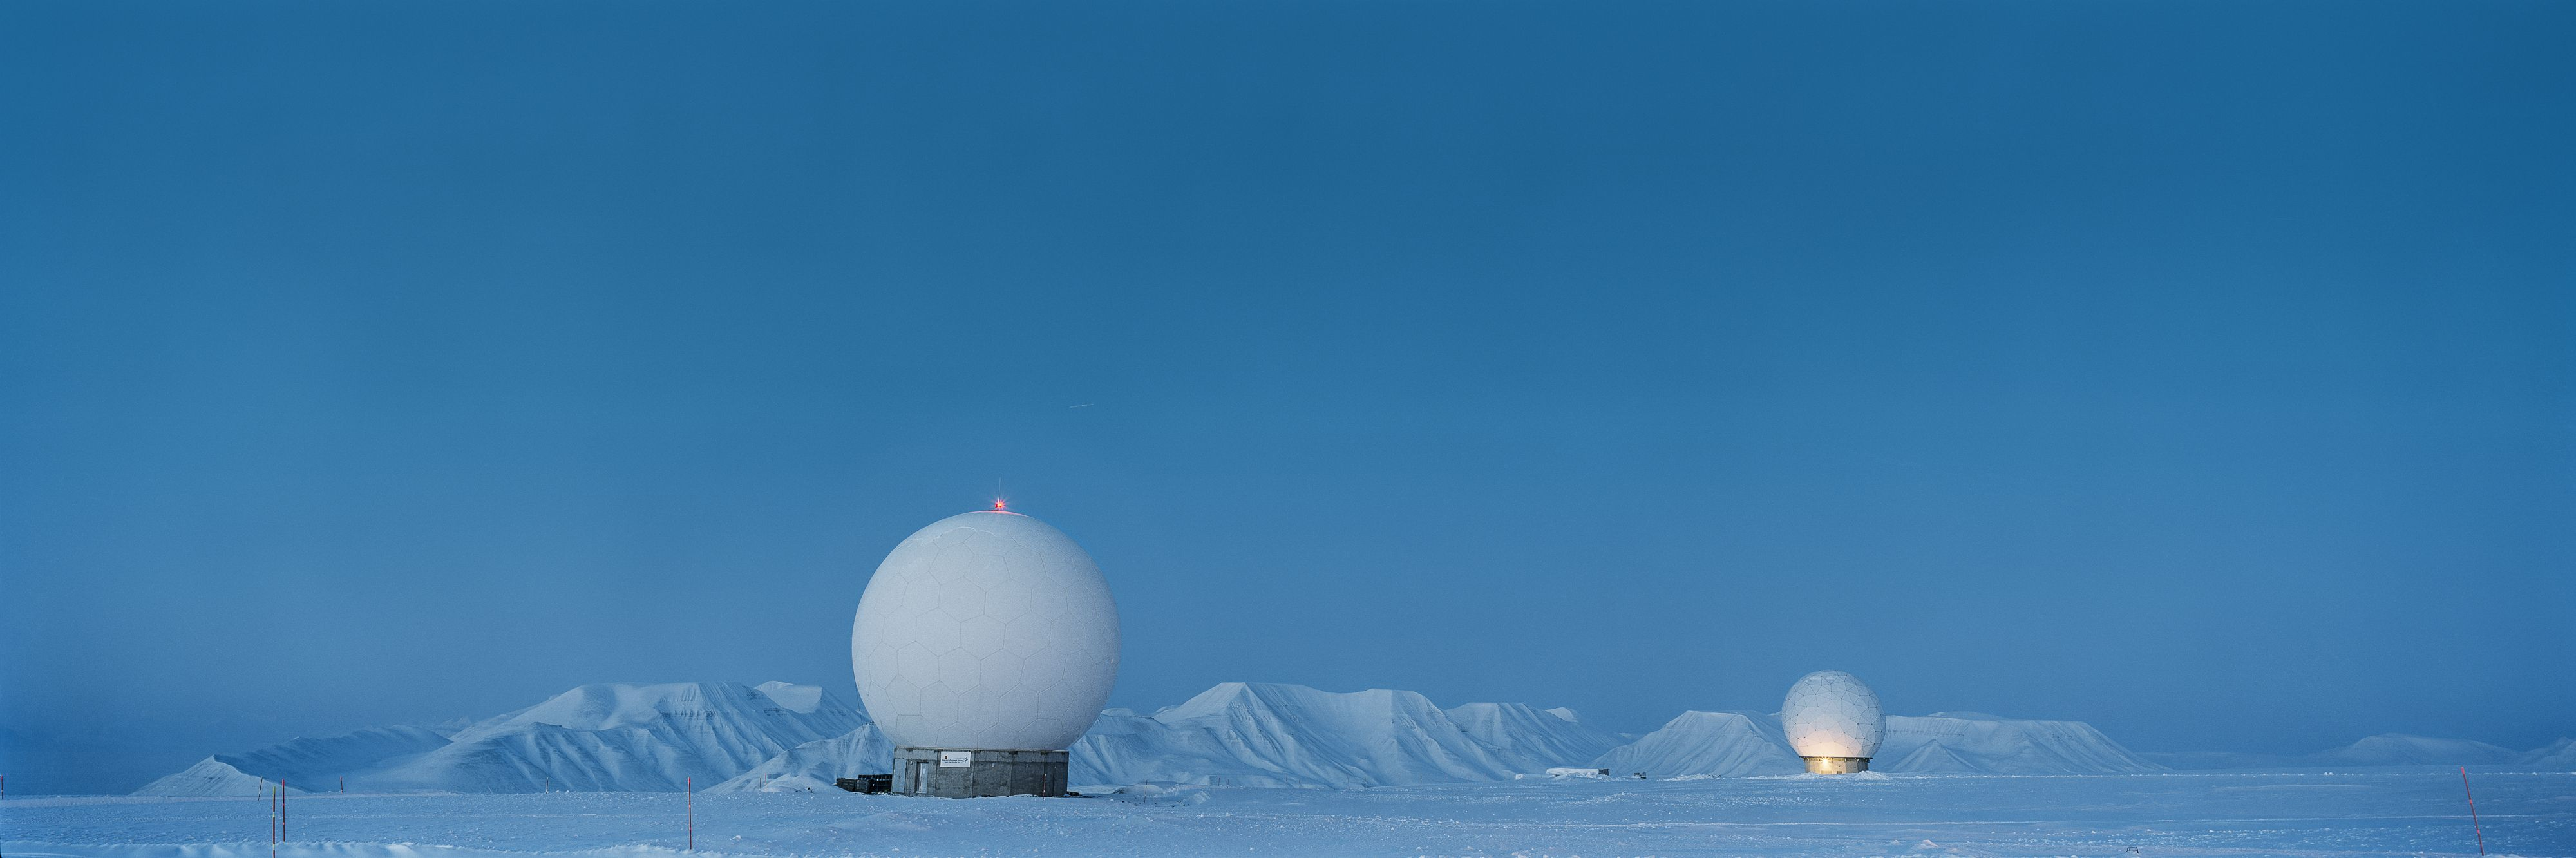 Spheres in moonlight, Arctic Technology, Spitsbergen,Christian Houge,Photographie